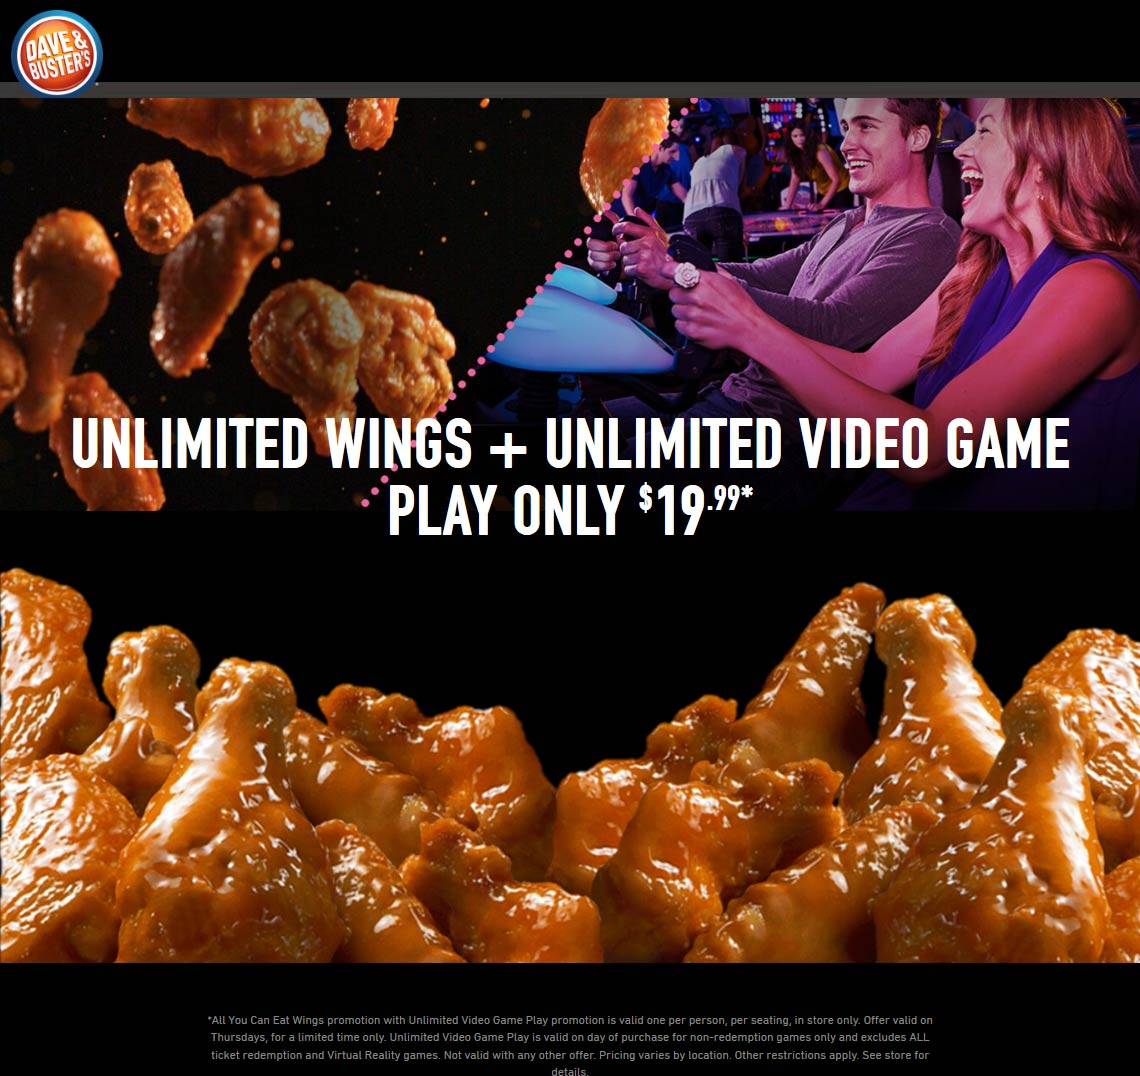 Dave & Busters Coupon August 2019 Bottomless wings $ games = $20 Thursday at Dave & Busters restaurants